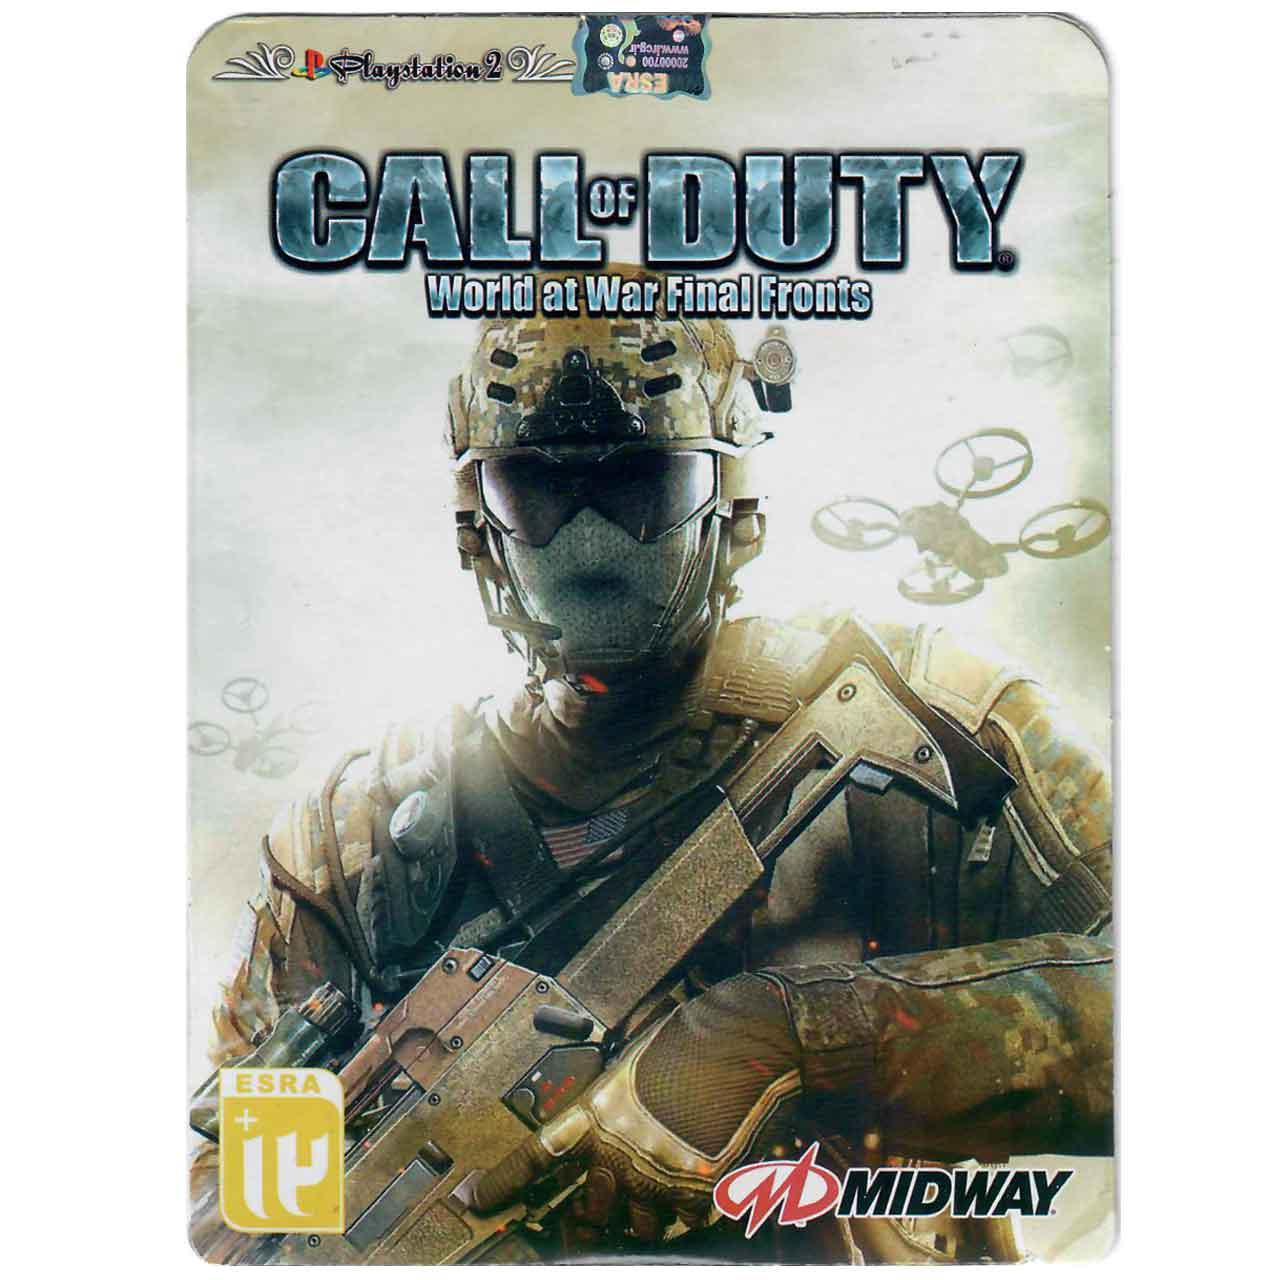 بازی Call Of Duty World At War Final Fronts مخصوص  PS2